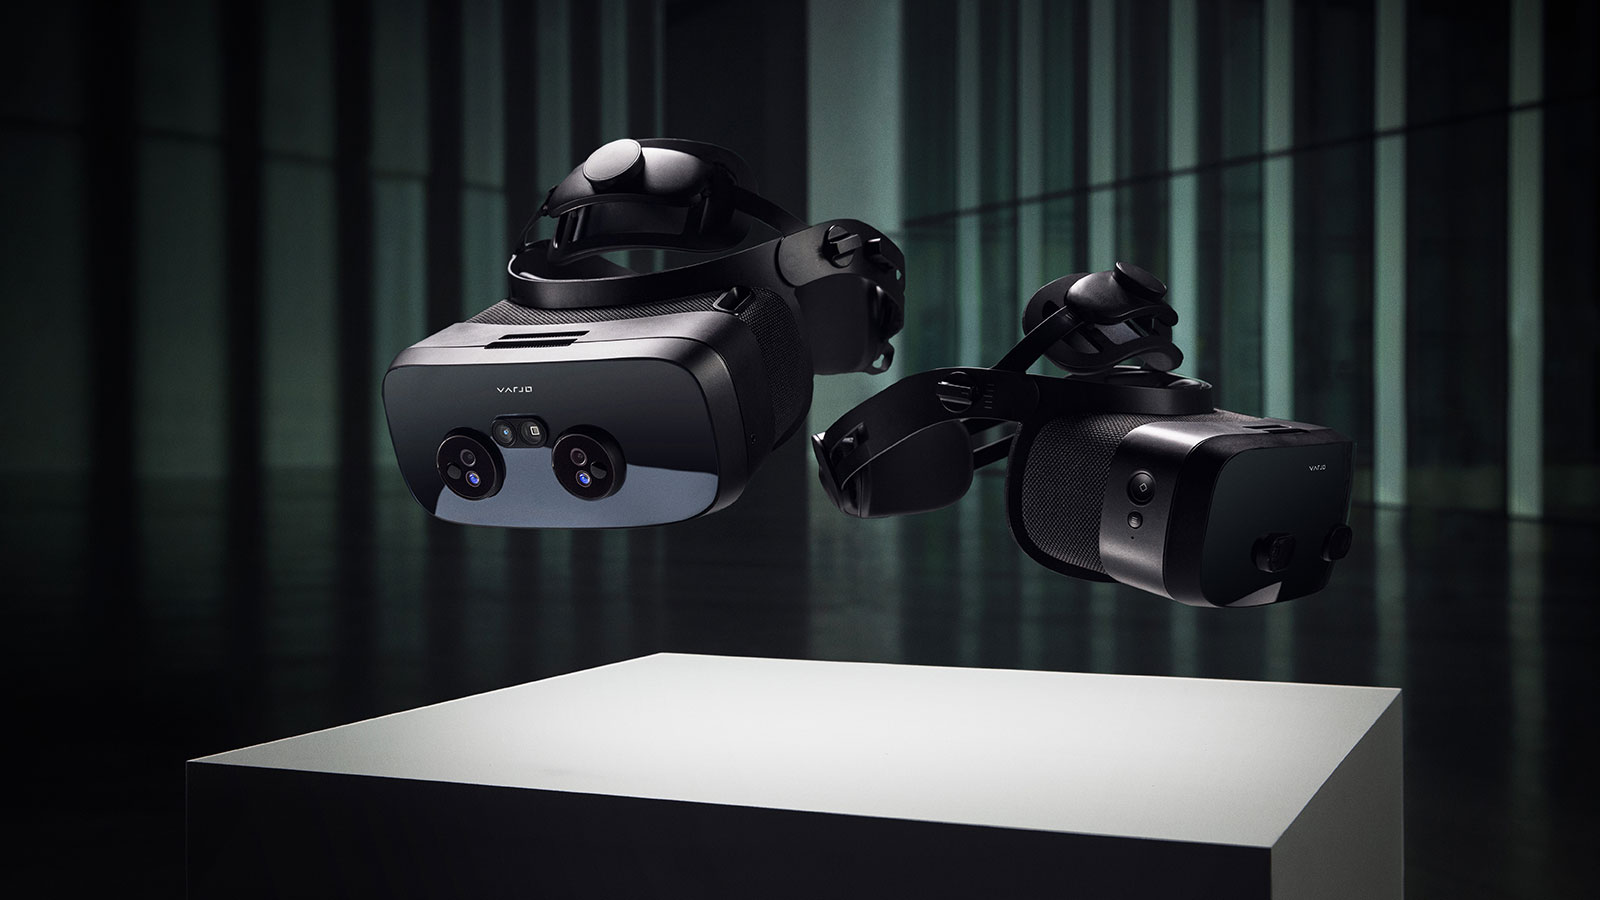 Varjo XR3 and VR3 headsets floating mid-air